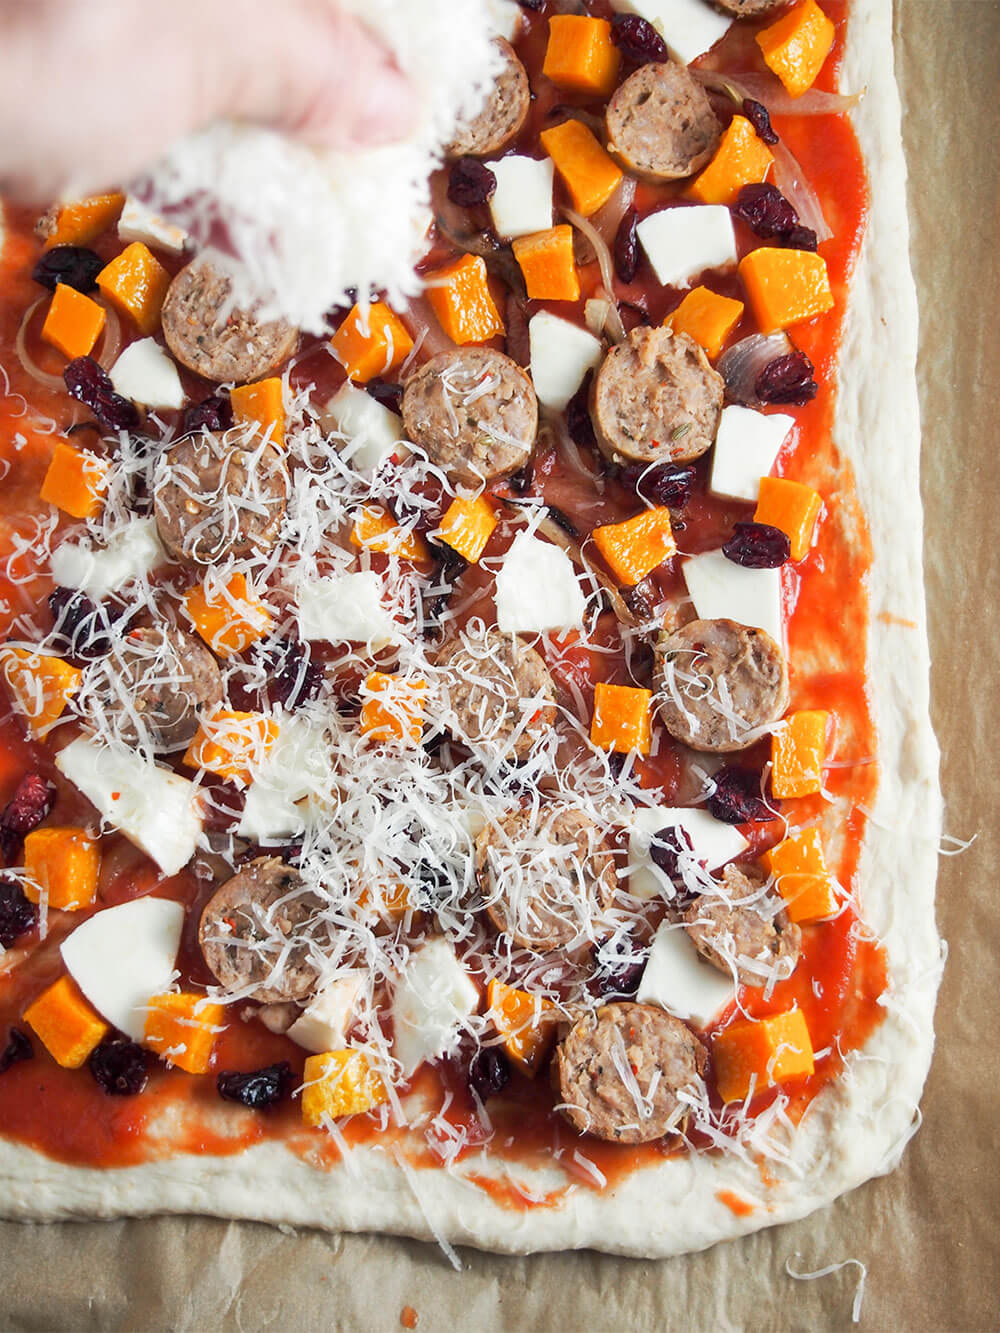 adding cheese to fall pizza with sausage and squash